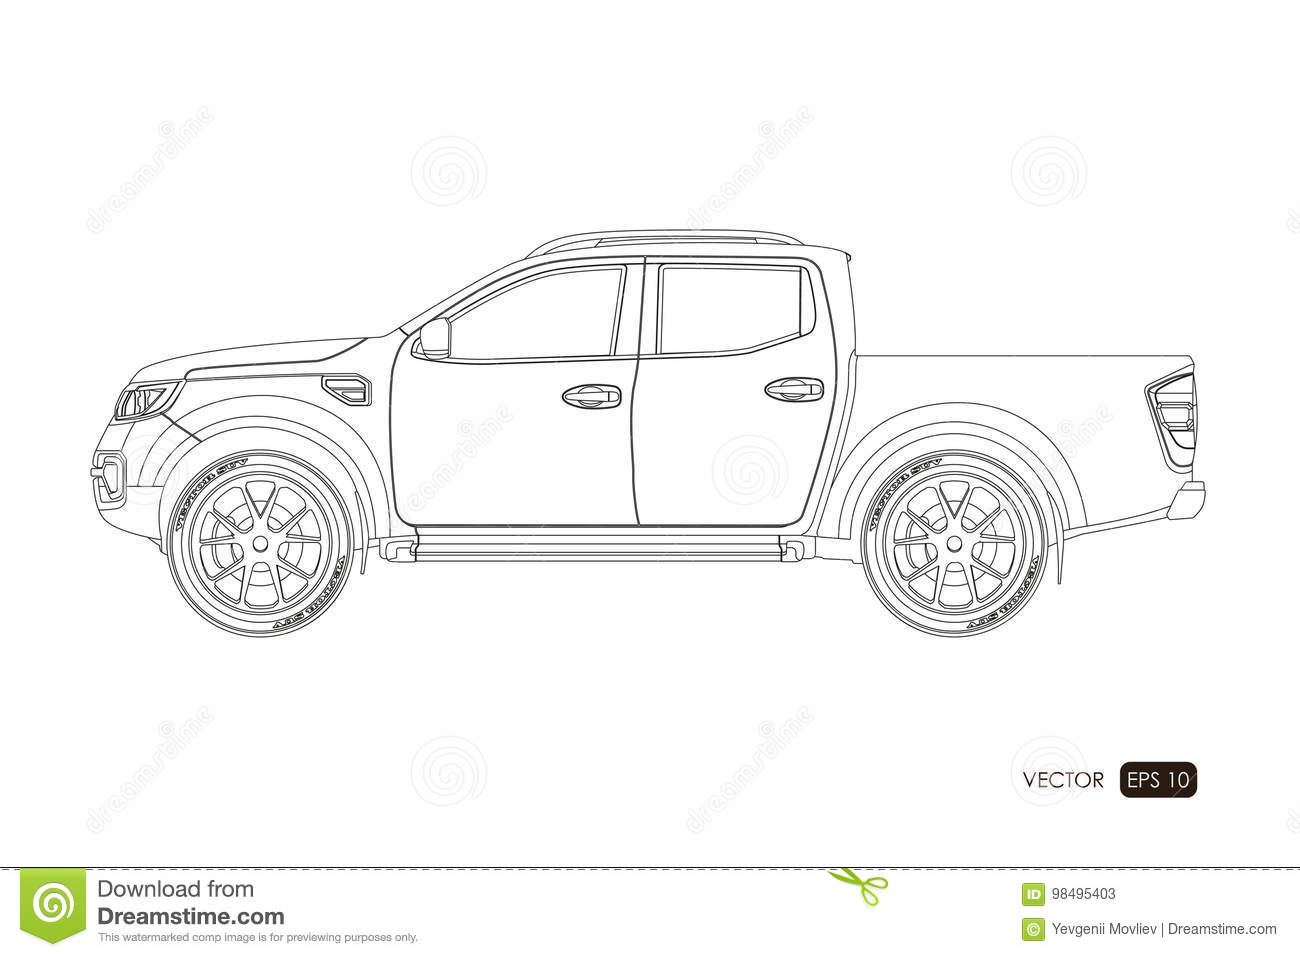 Blueprint of suv contour drawing of car on a white background side blueprint of suv contour drawing of car on a white background side view of pickup the vehicle in outline style malvernweather Choice Image